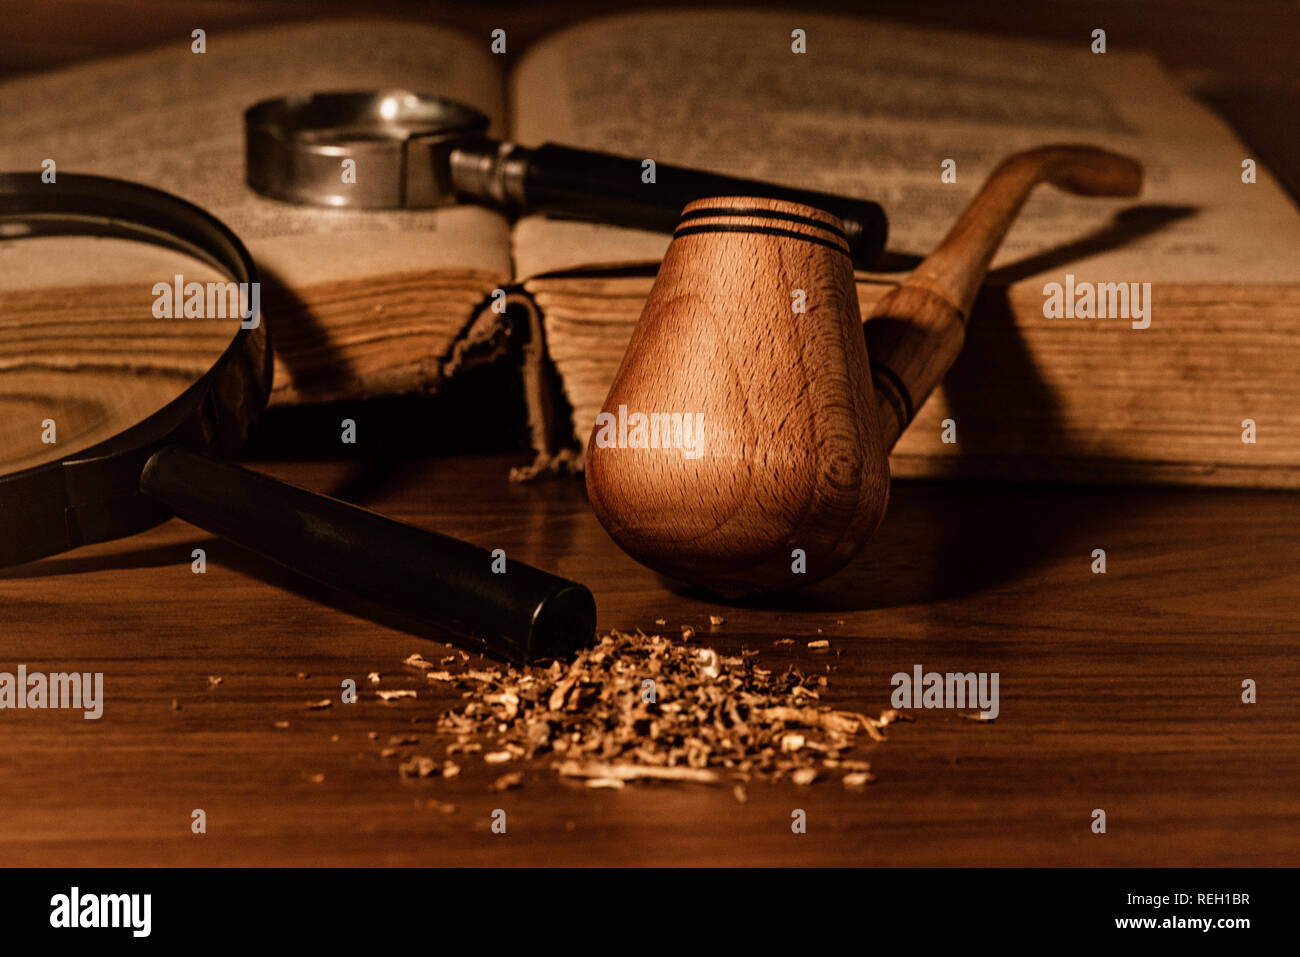 Smoking pipe with tobacco leaves on wooden background.wooden background. - Stock Image